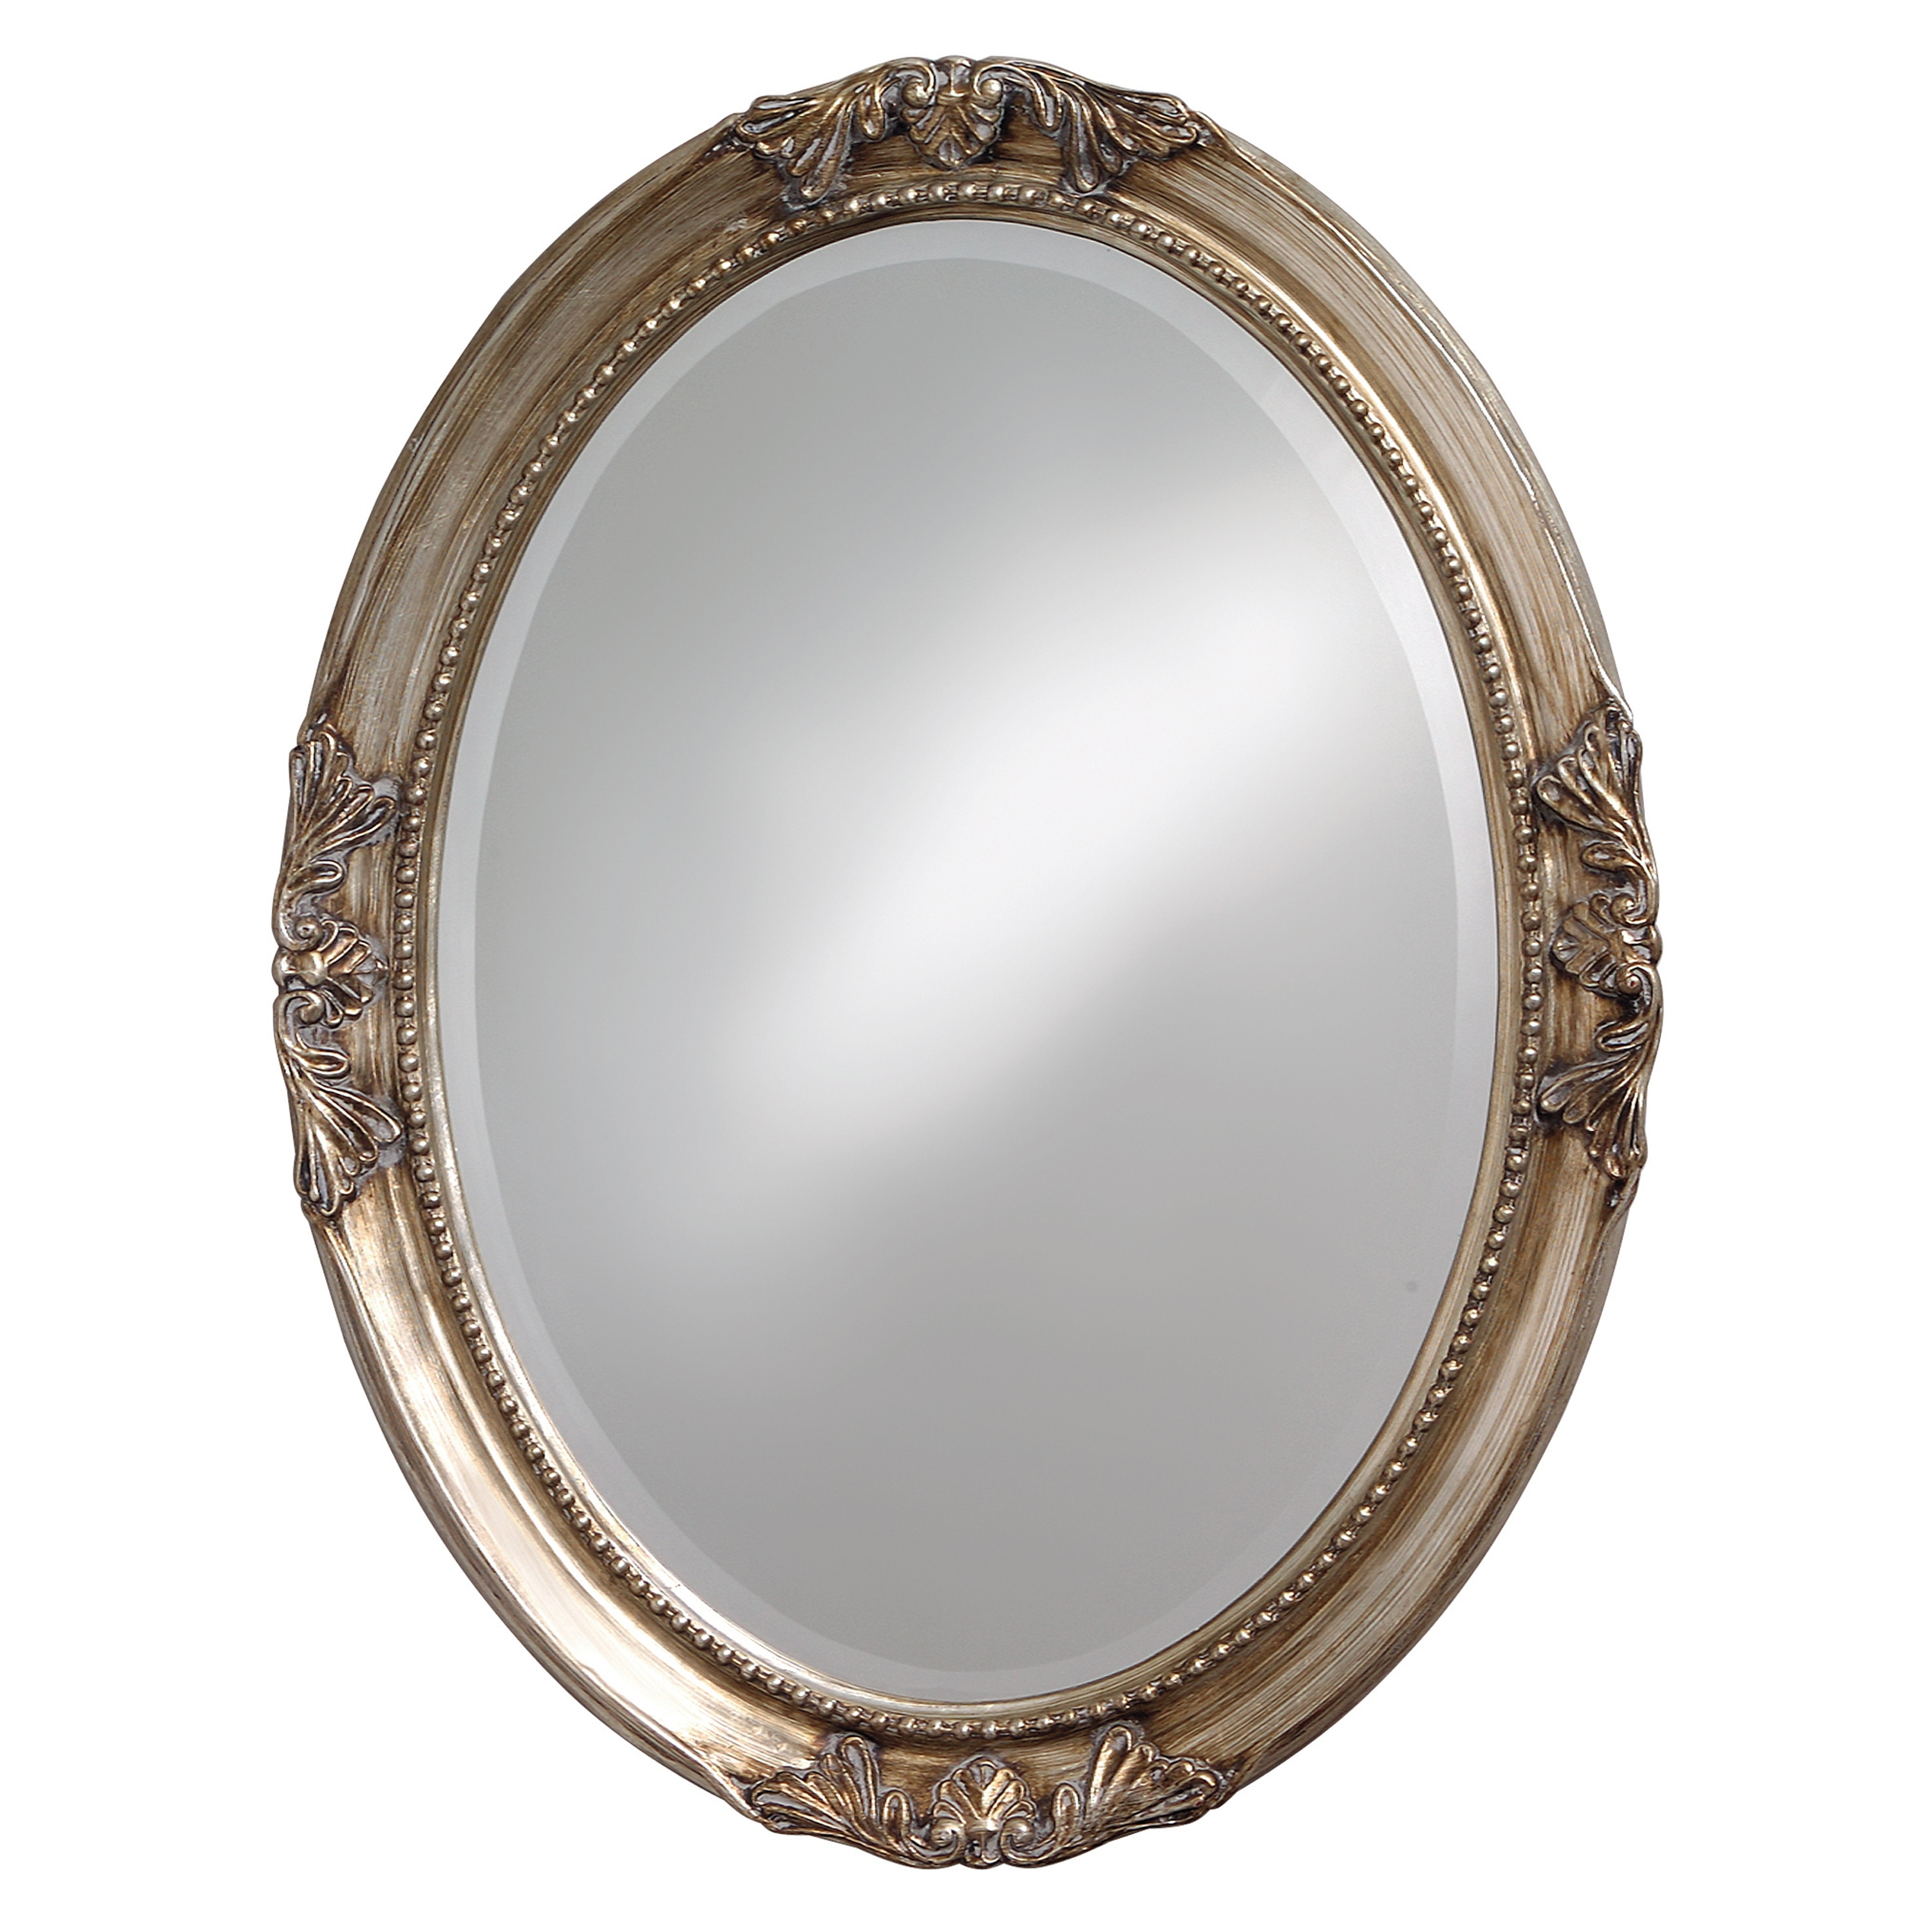 Lisette Silver Wood Oval Mirror 14036547 Overstock Com